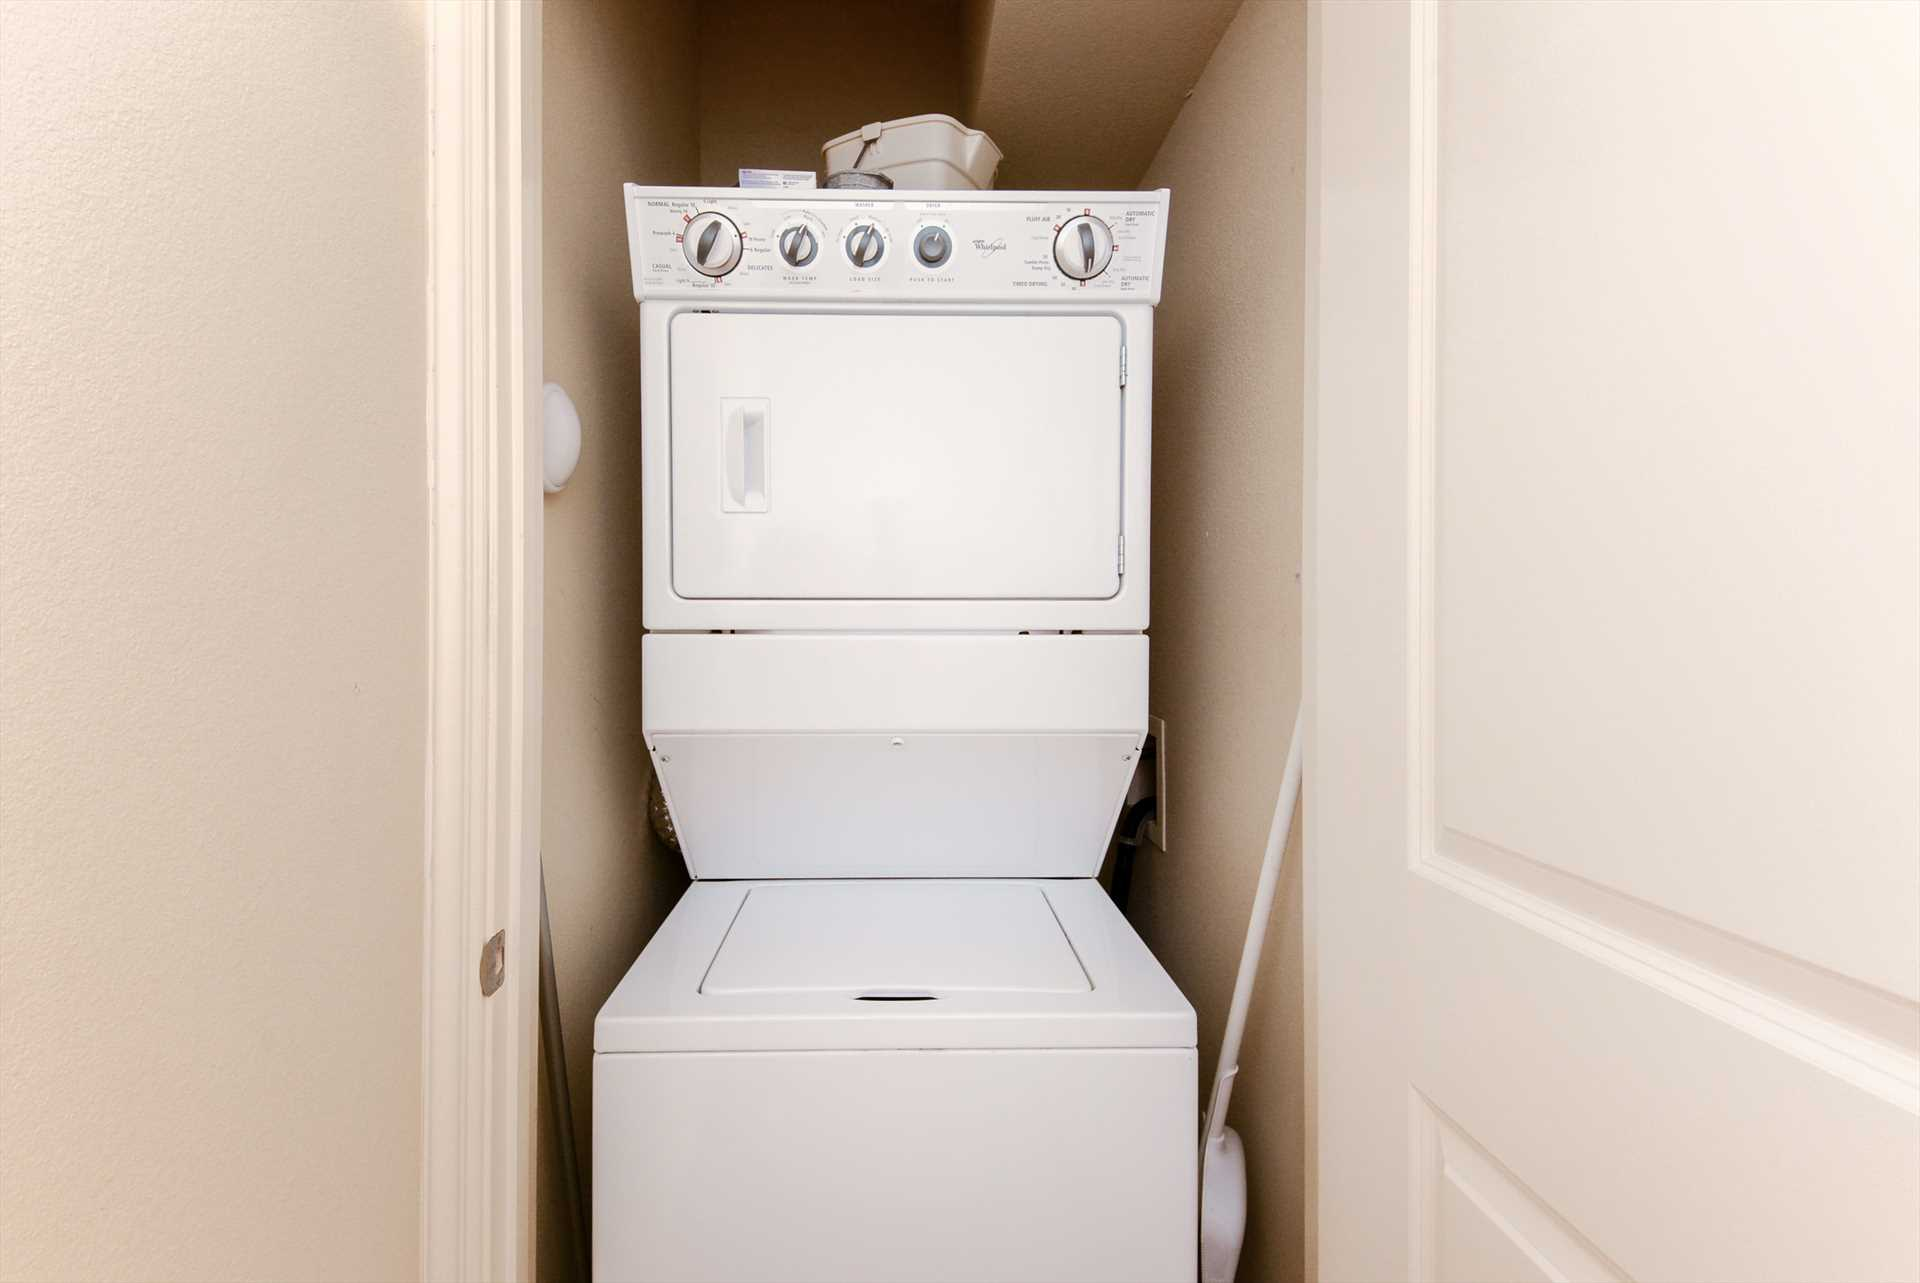 Laundry doesn't take a vacation - good thing this condo incl